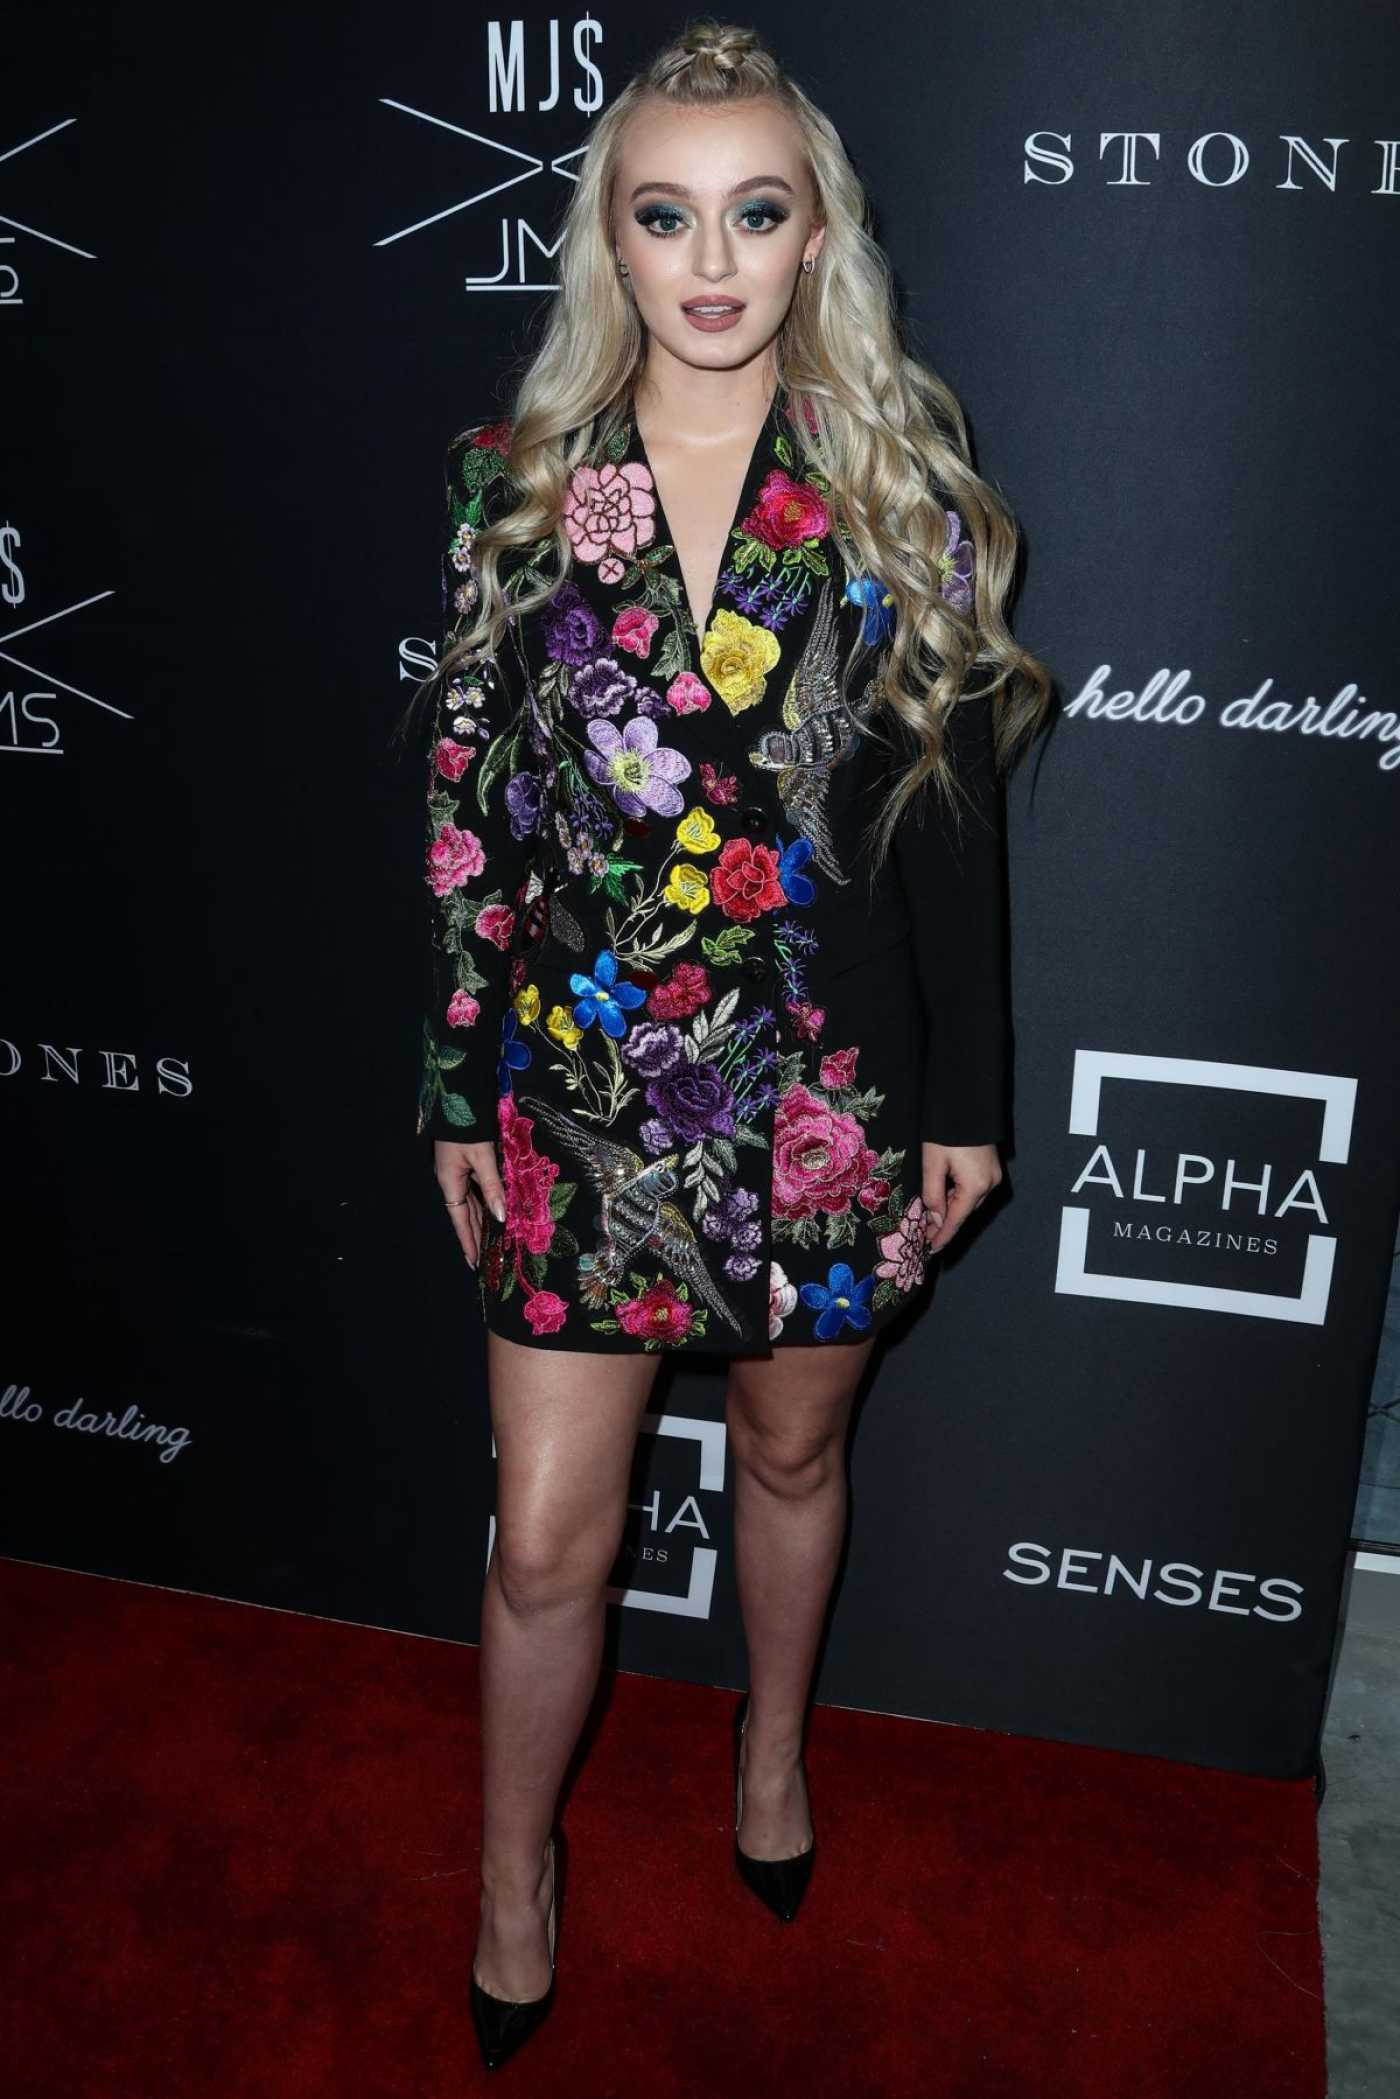 Savannah Kennick Attends the Matt Sarafa and Jonathan Marc Stein's Rich Fashion Show in LA 03/29/2019